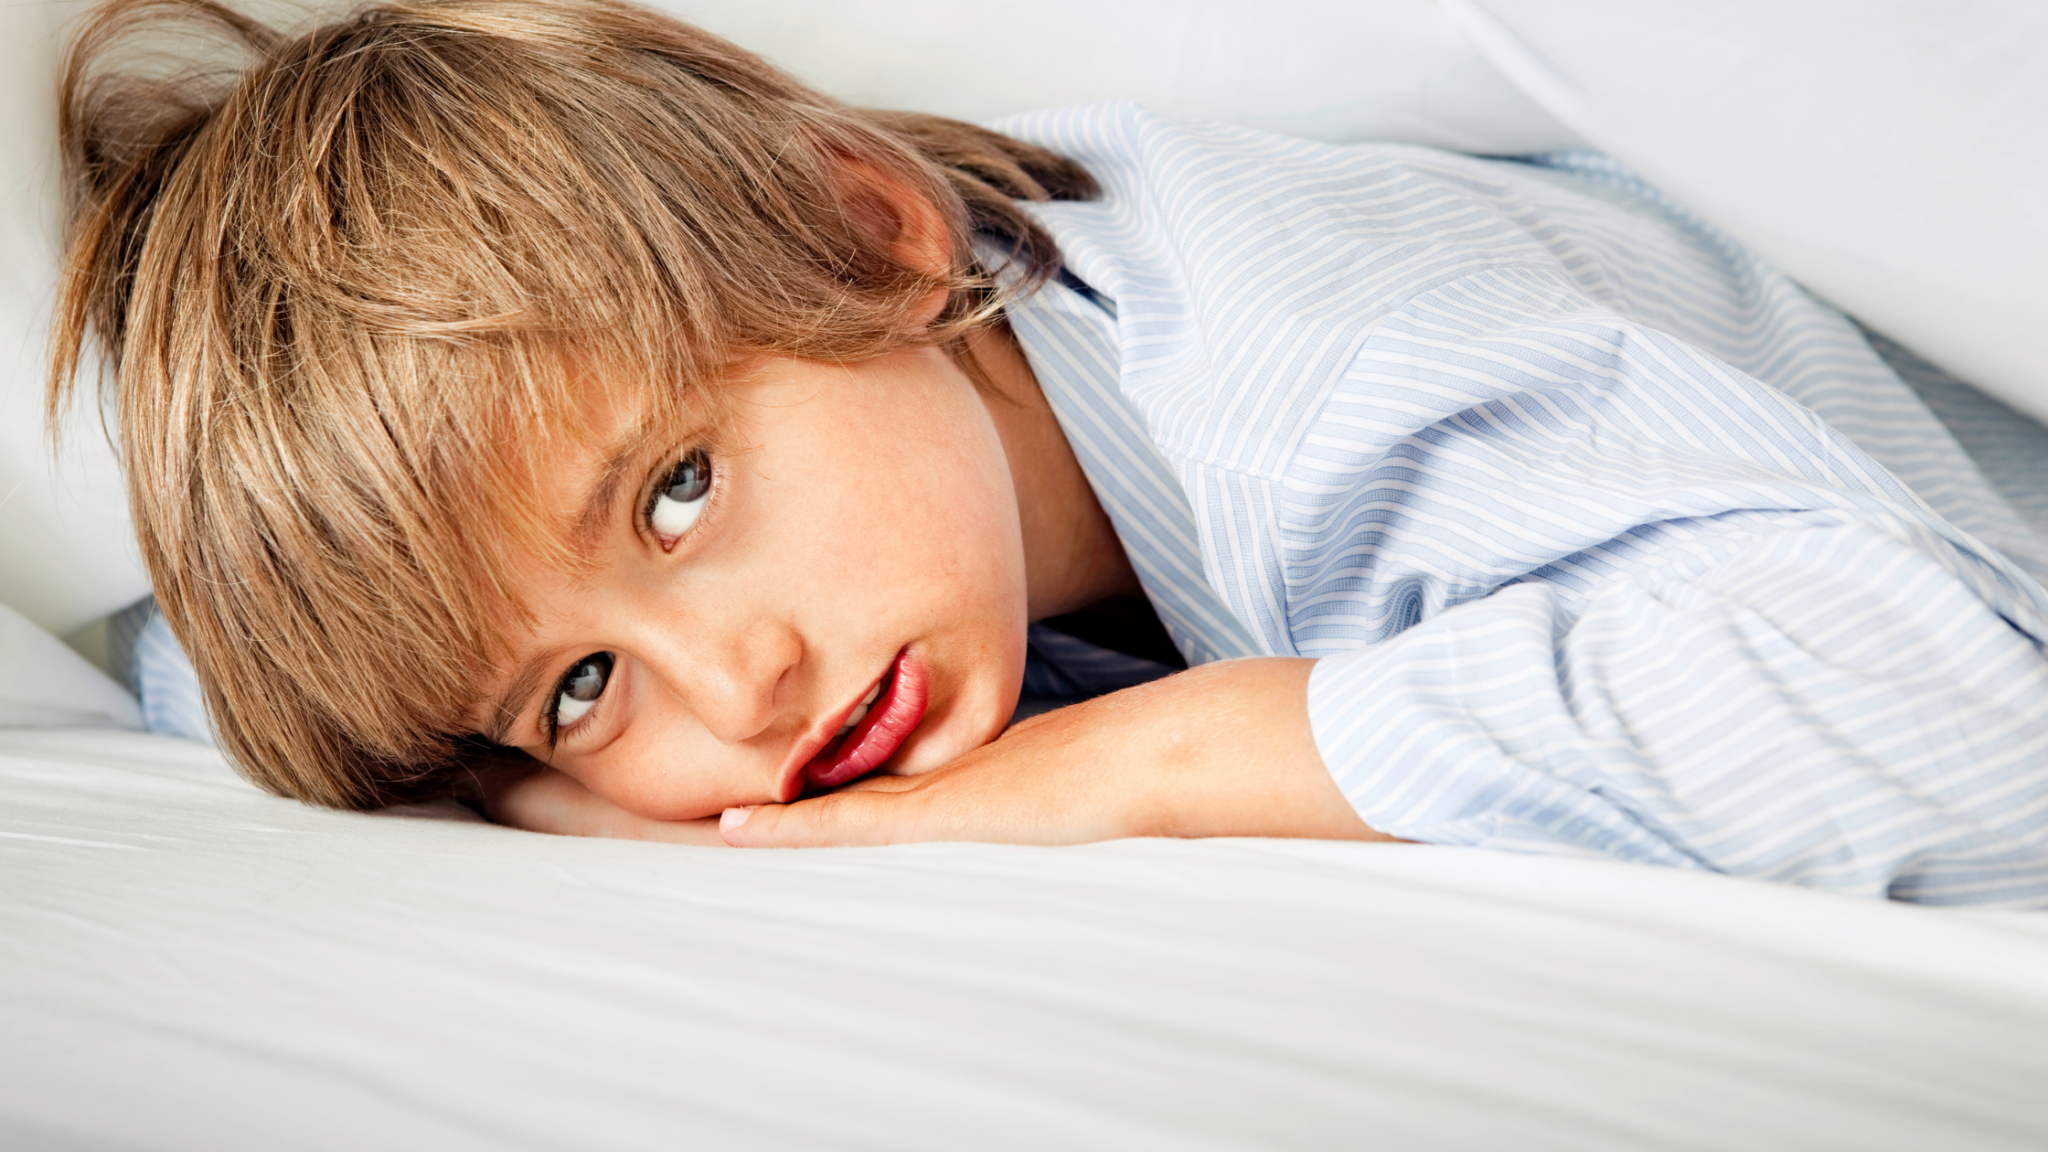 A child with ADHD, lying in bed but struggling to fall asleep.